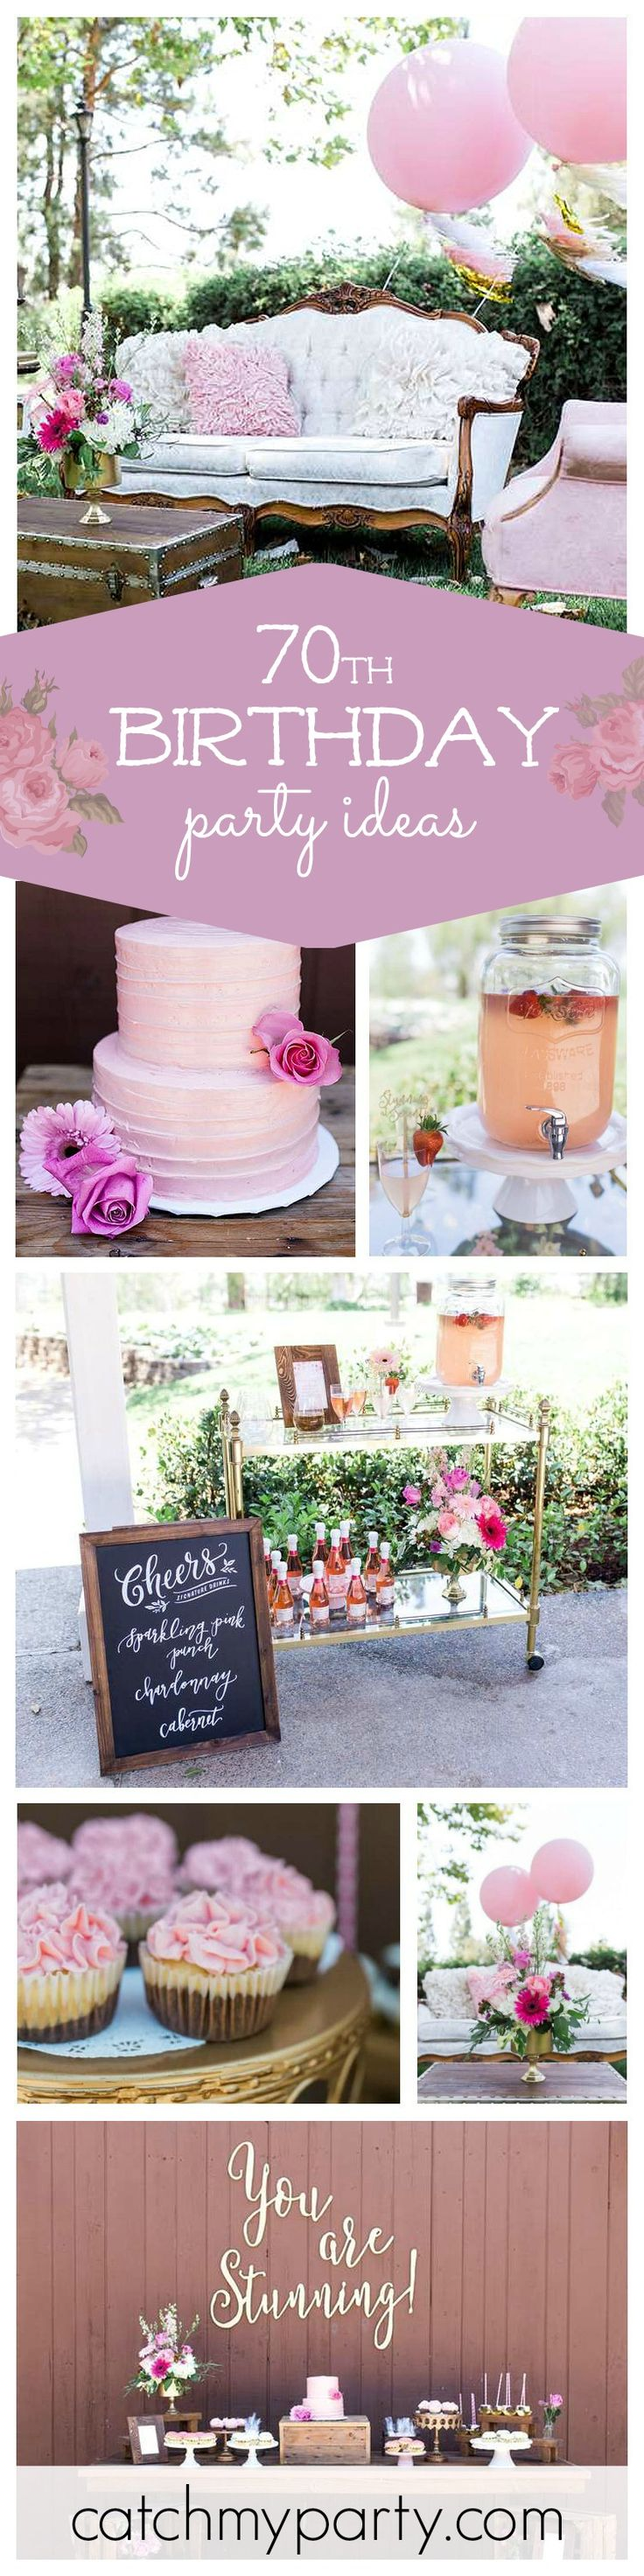 A stunning 70th birthday garden party with so many ideas gorgeous ideas for hosting 'that' special party for a mom, mother-in-law, or grandmother! The cake is just simply gorgeous! See more party ideas at CatchMyParty.com